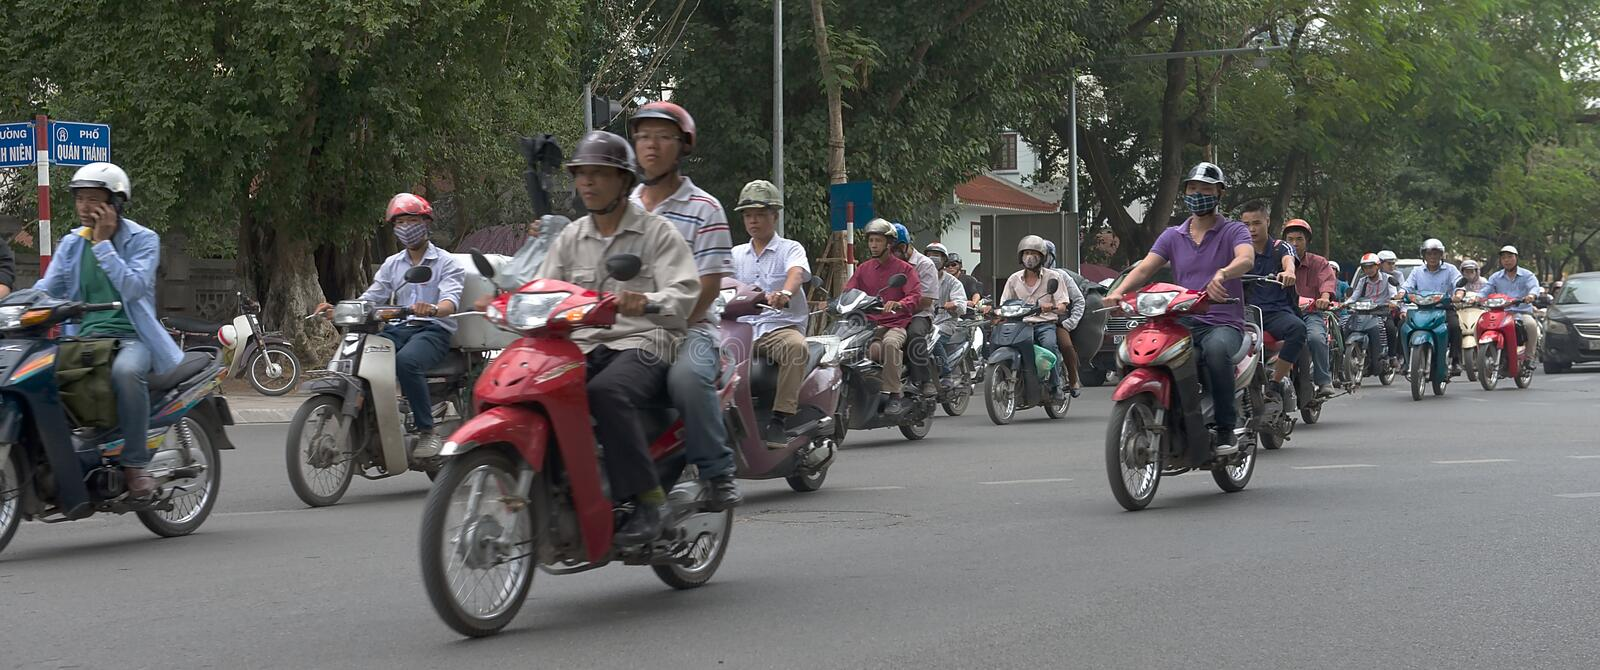 Opstopping in Ho-Chi-Minh-Stad Vietnam royalty-vrije stock afbeelding